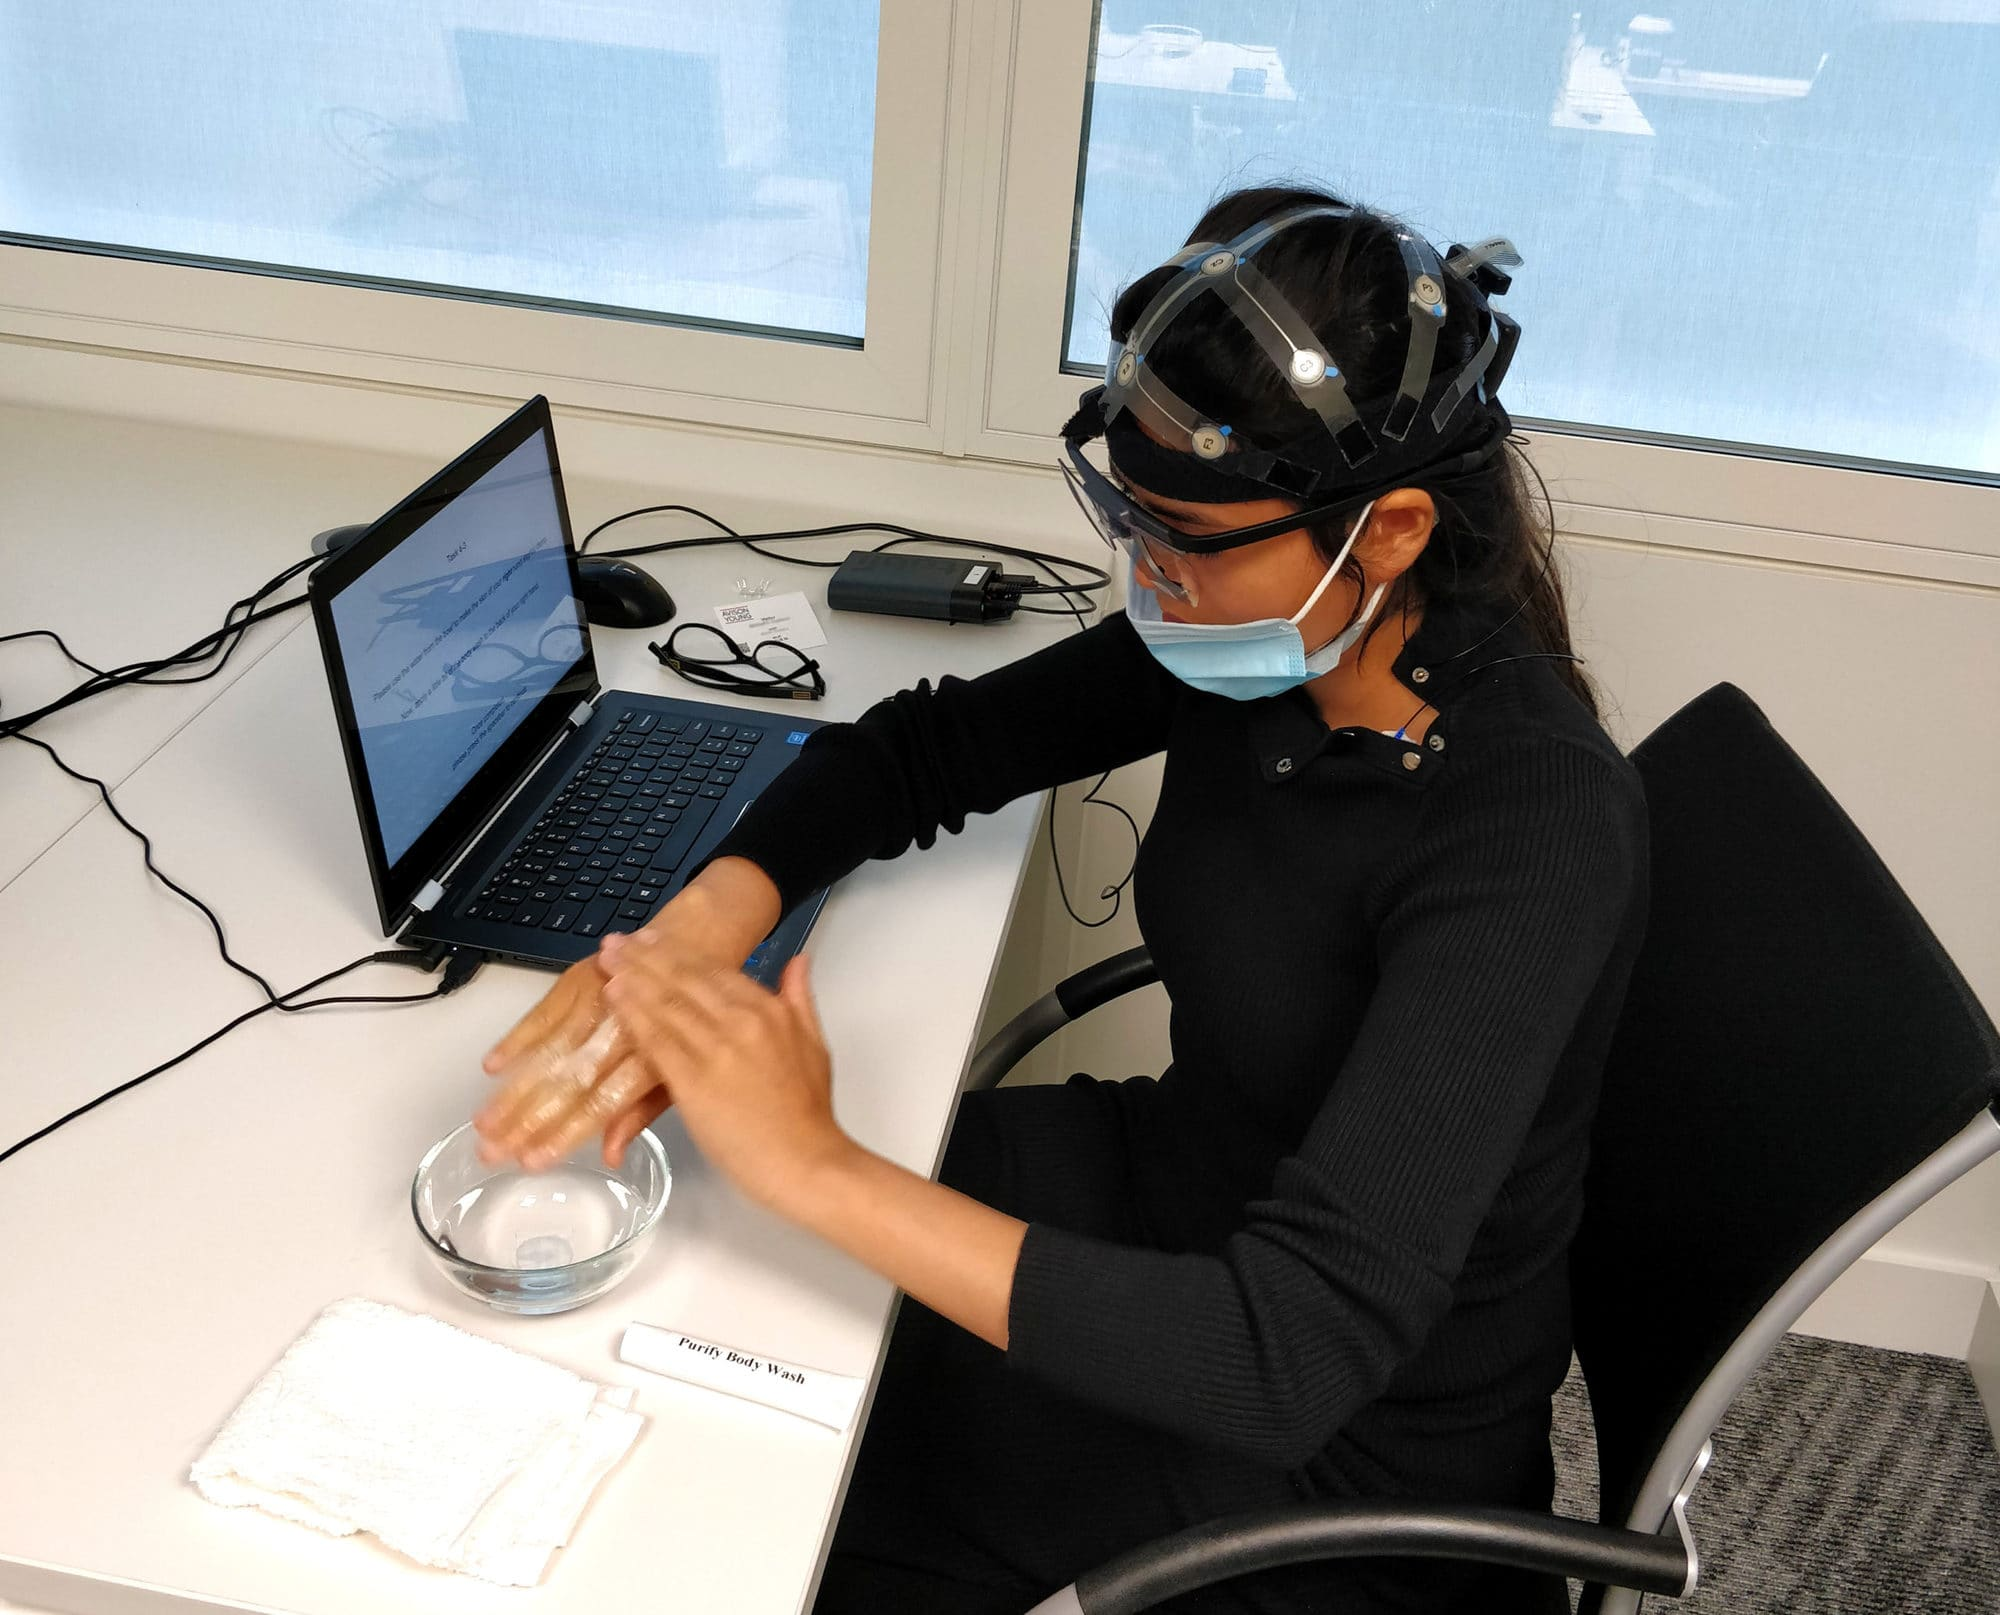 A woman with EEG equipment working on a computer.